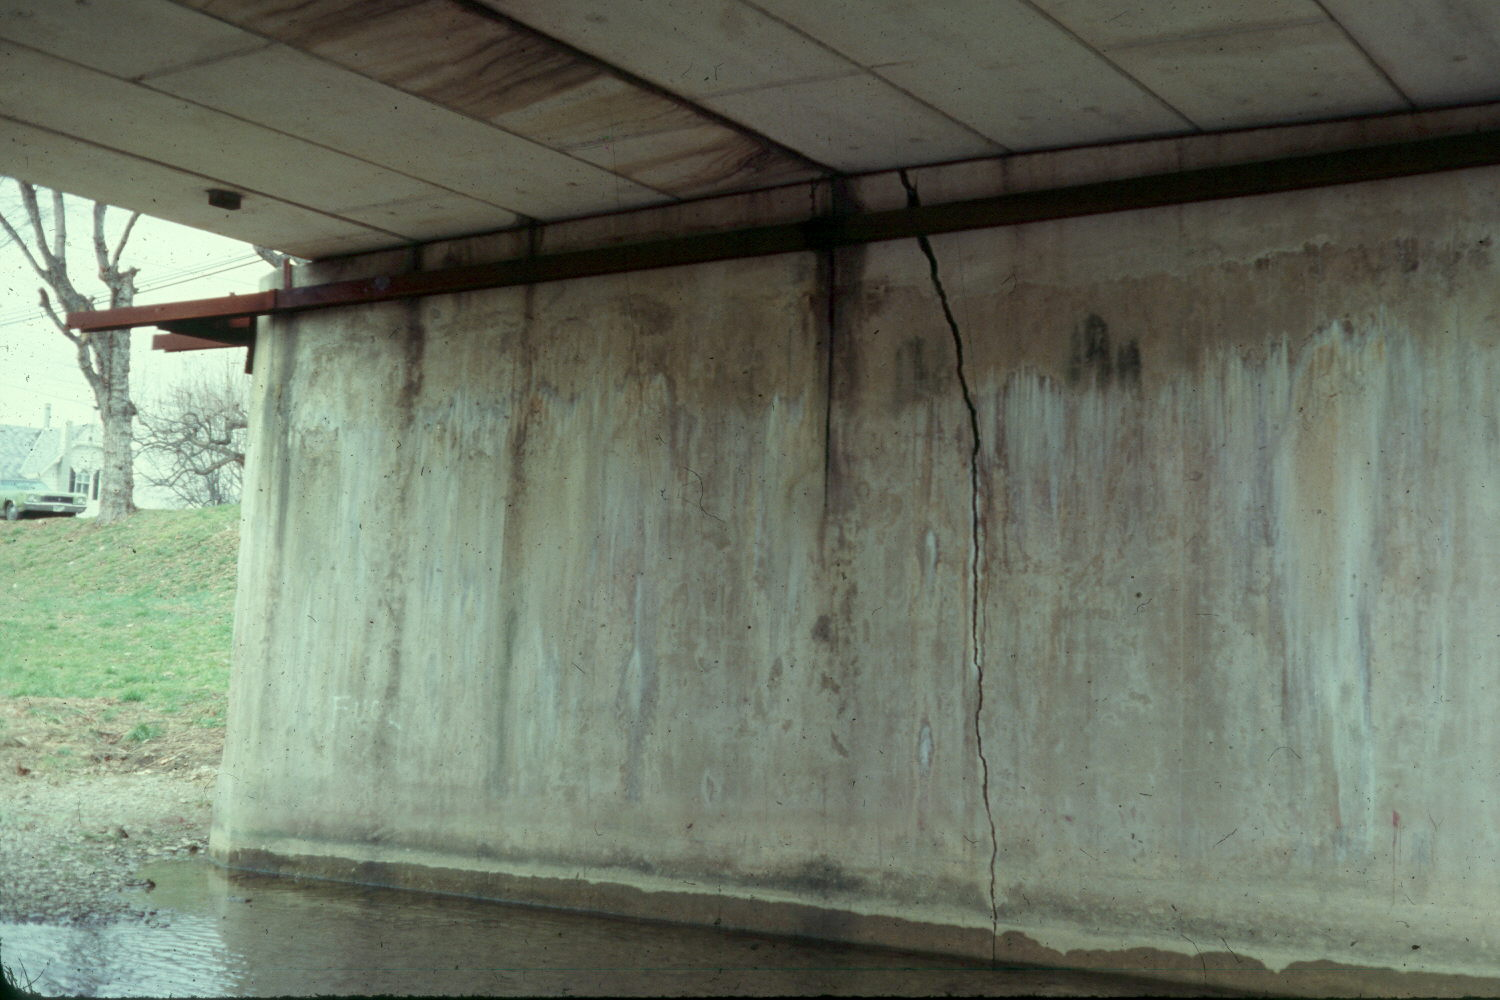 Concrete Wall Type Piers Vertical Cracks